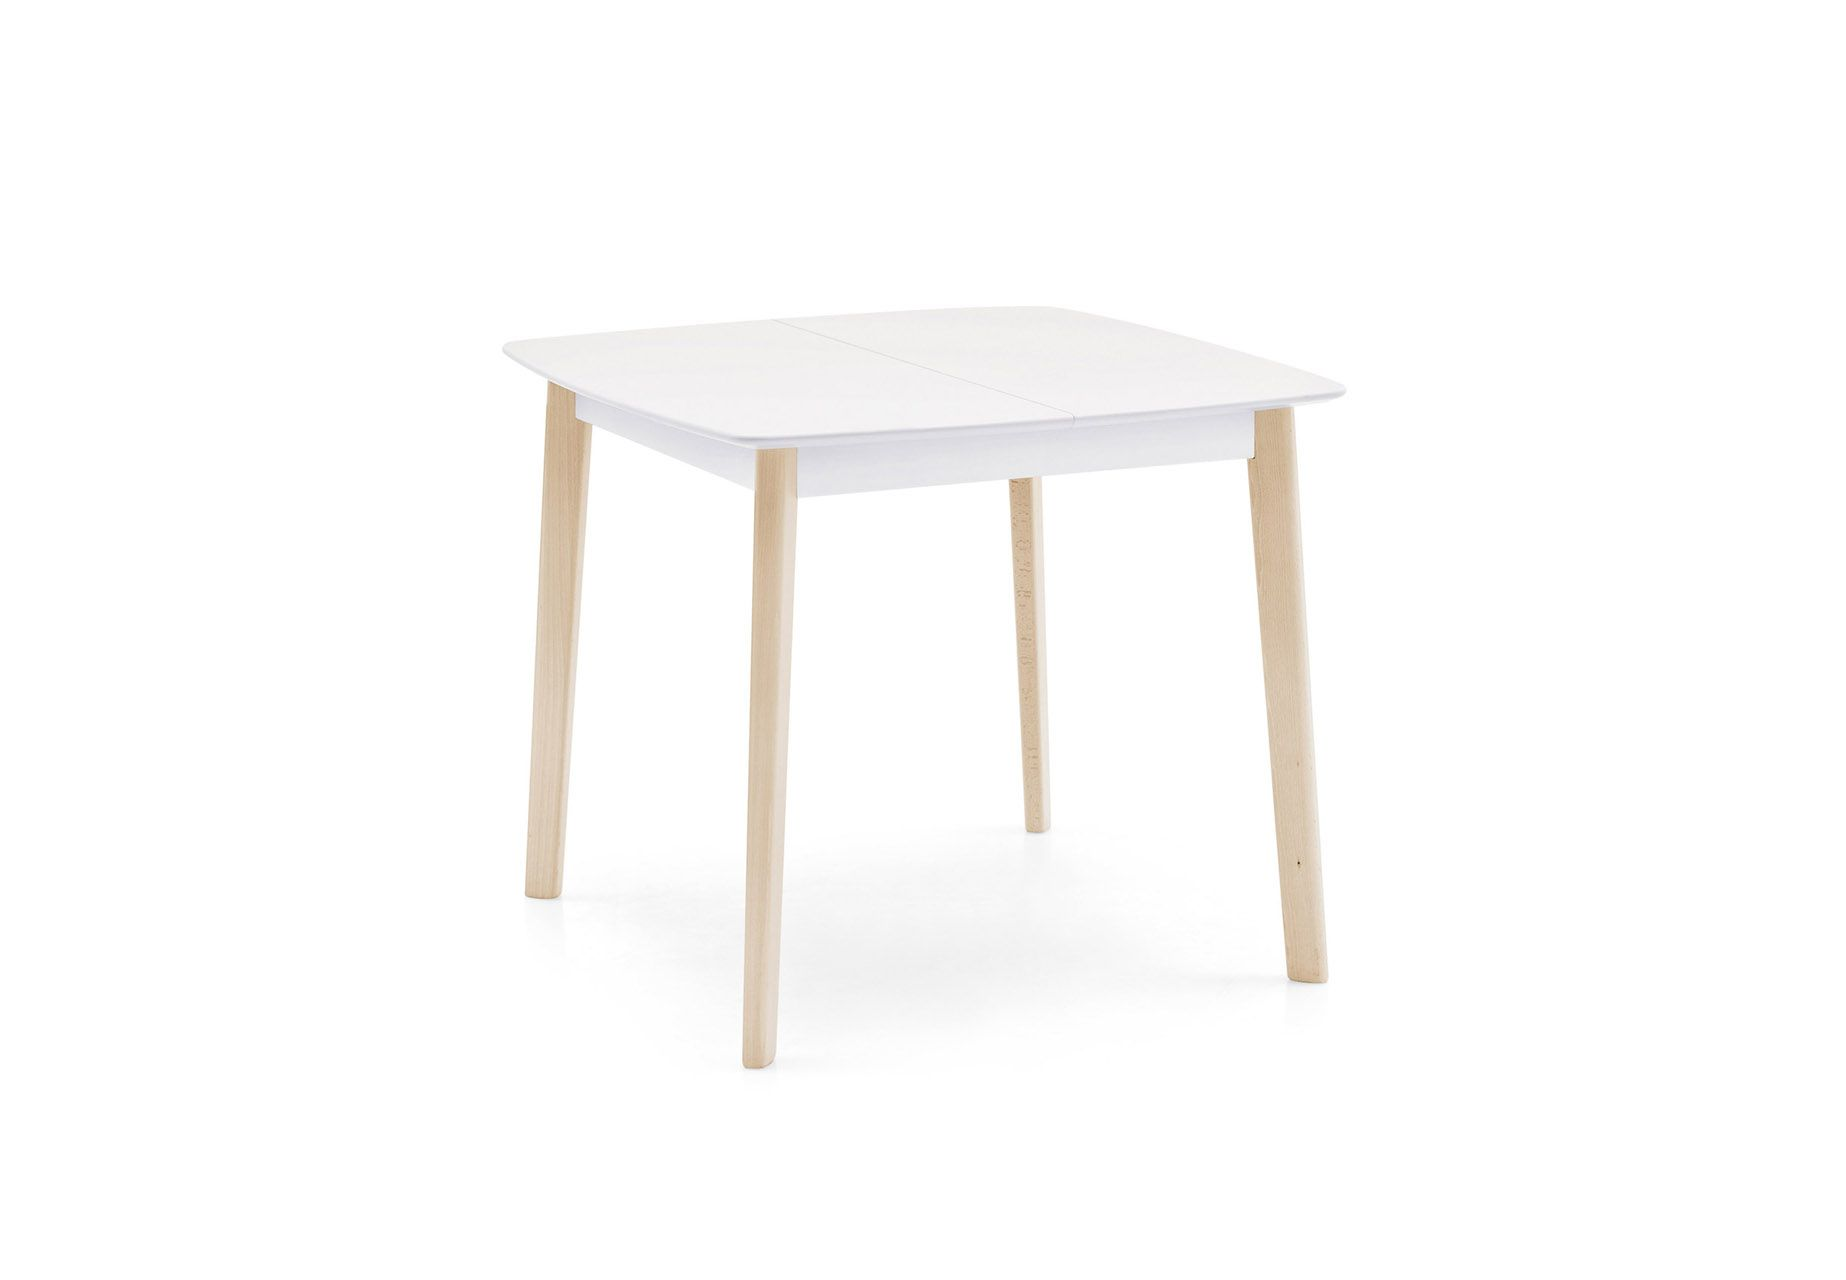 CREAM TABLE is a wooden extending table, square and small.The wooden CREAM  TABLE has a simple design but is made with attention to the smallest d